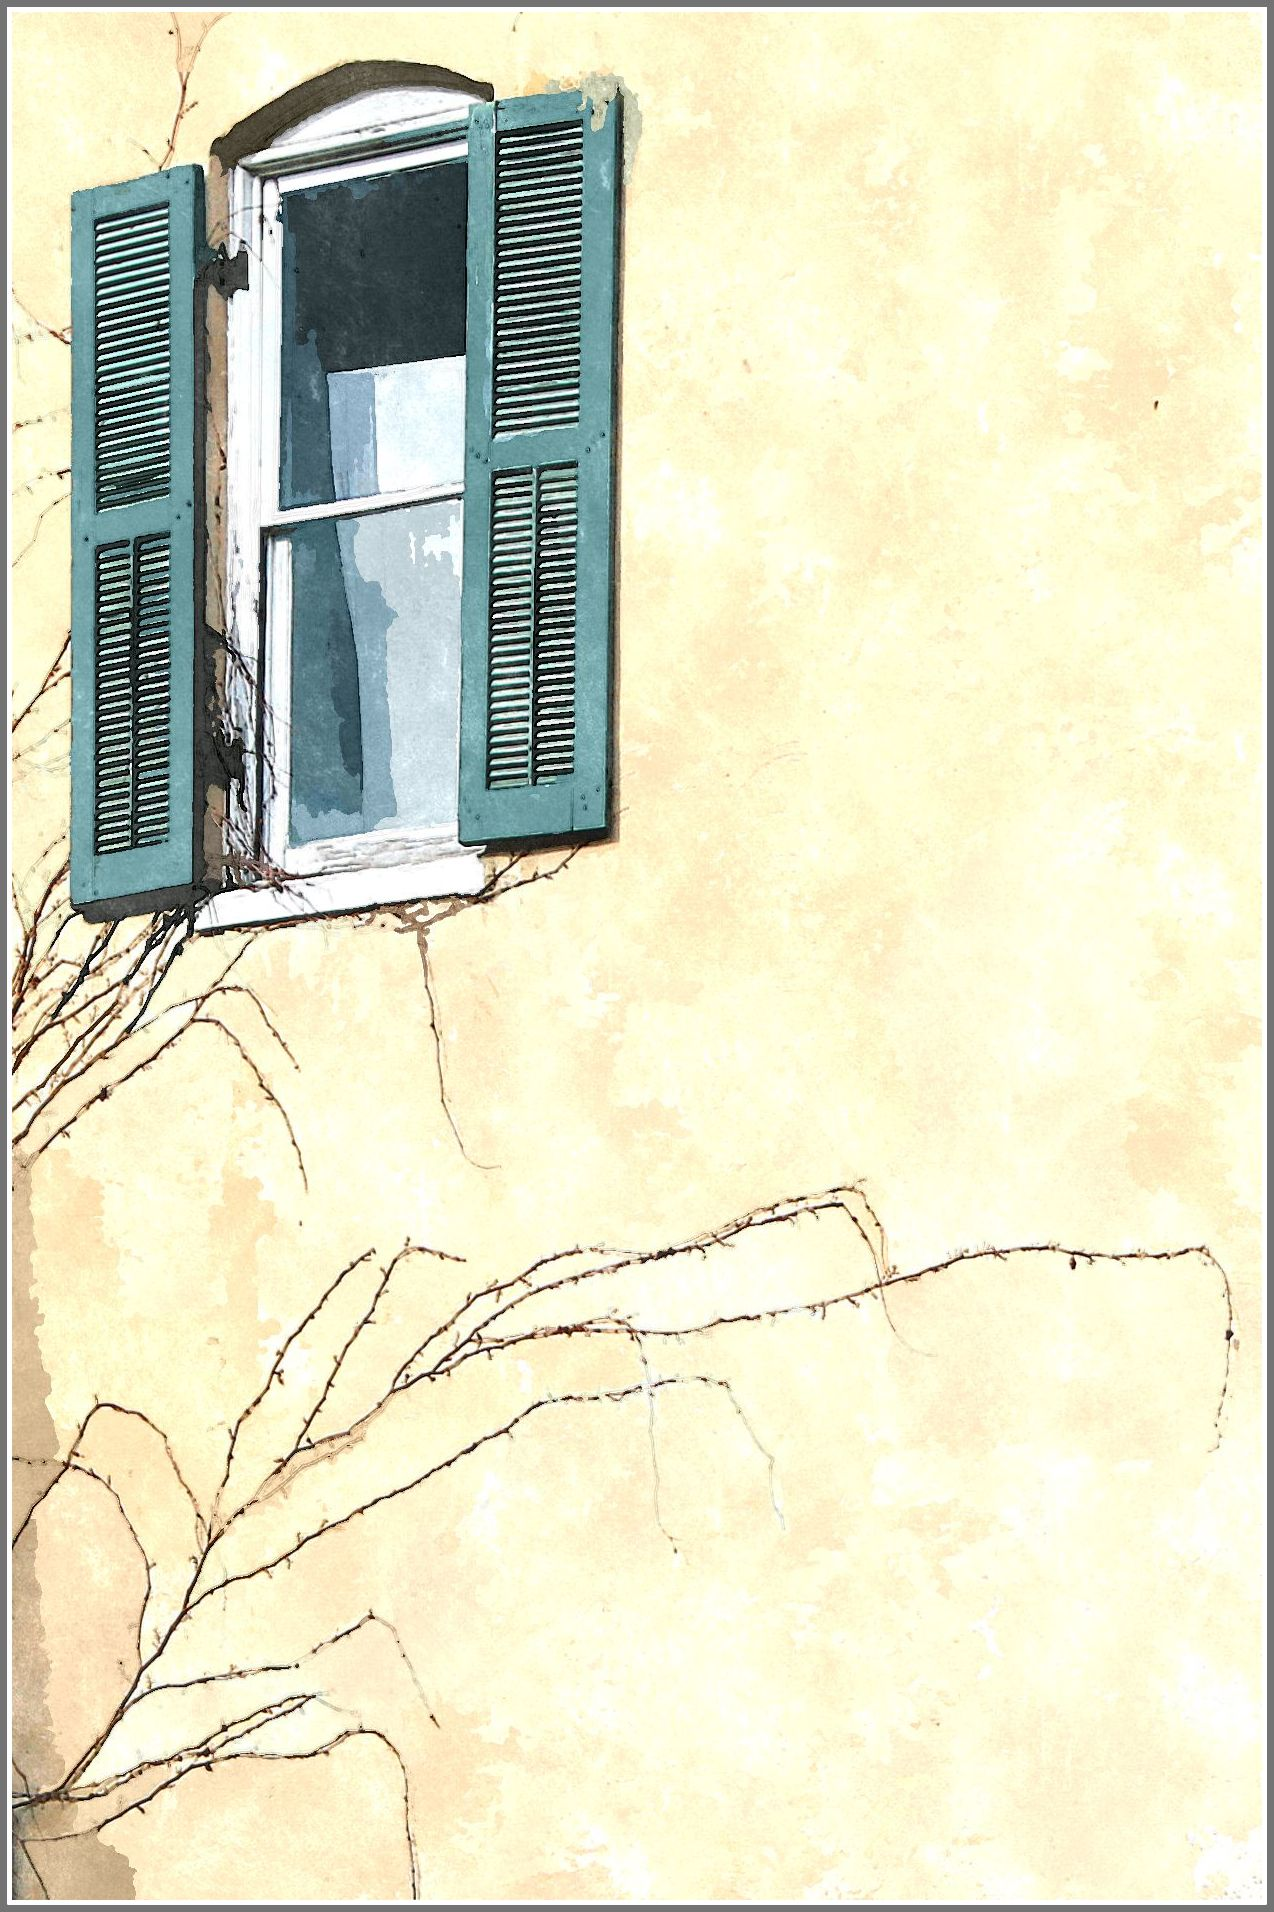 Sketched gall harpers window w border